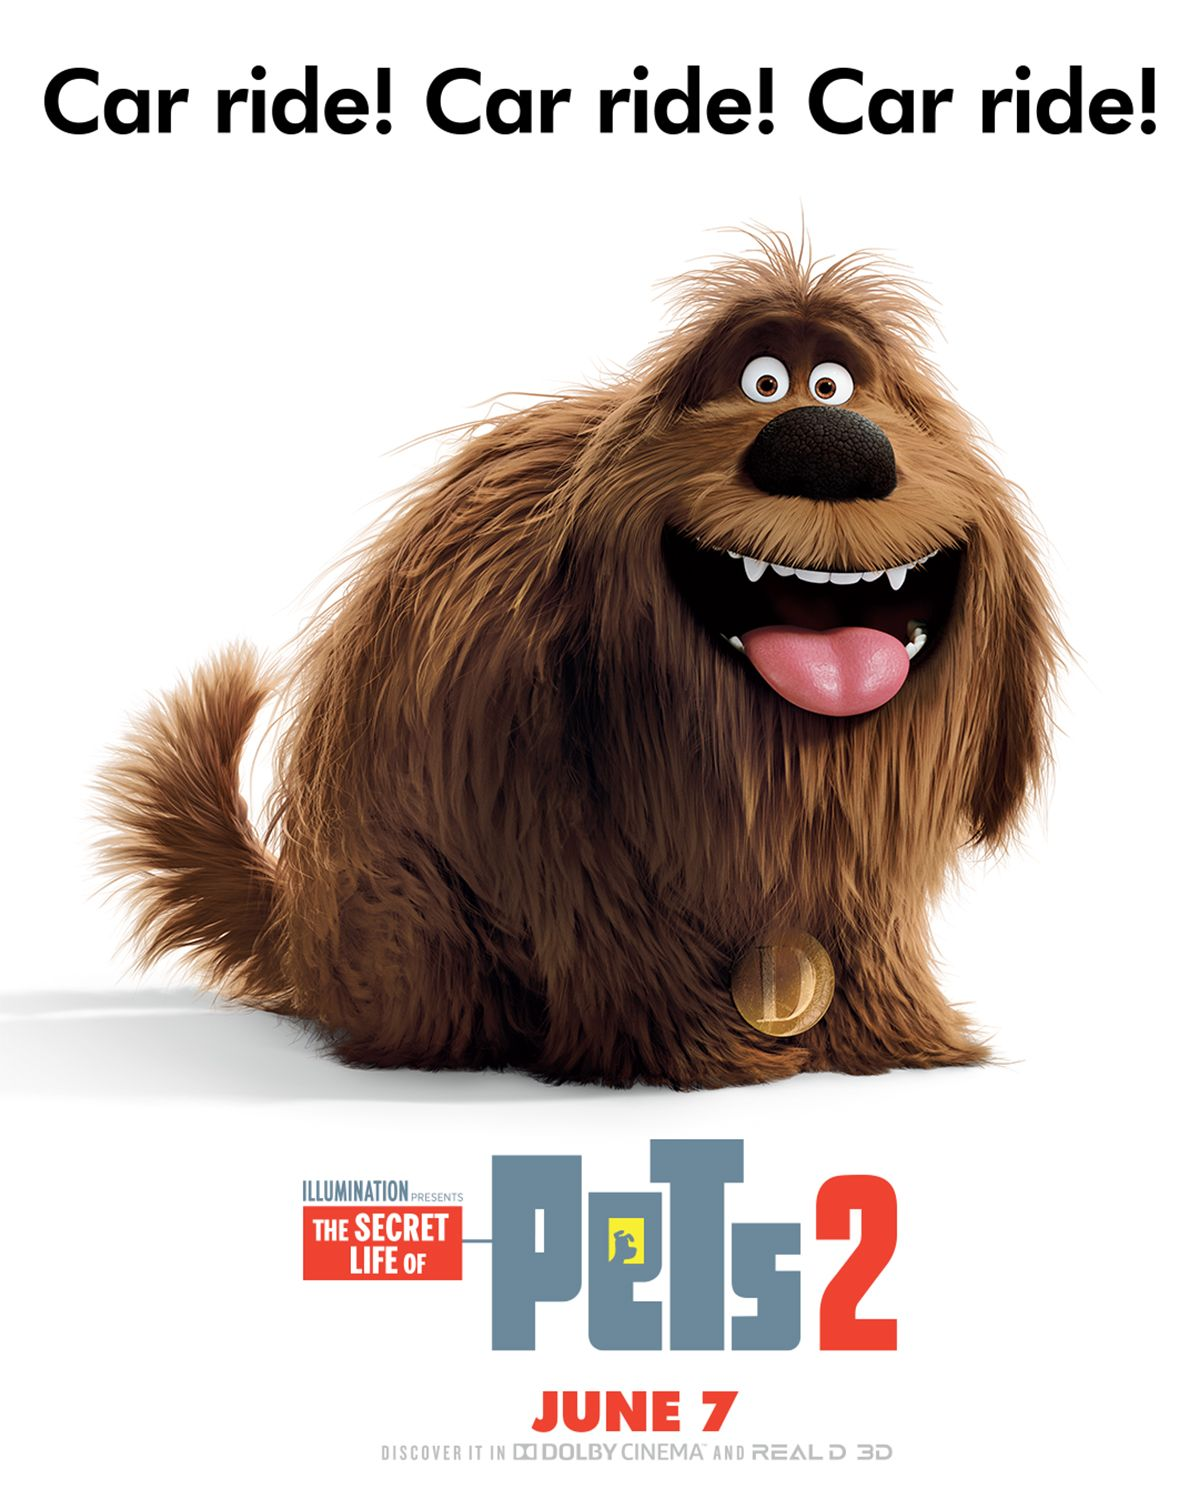 Eric Stonestreet Is Duke The Pets Return This Summer In The New Movie The Secret Life Of Pets 2 Coming To Theater Secret Life Of Pets Secret Life Pets Movie